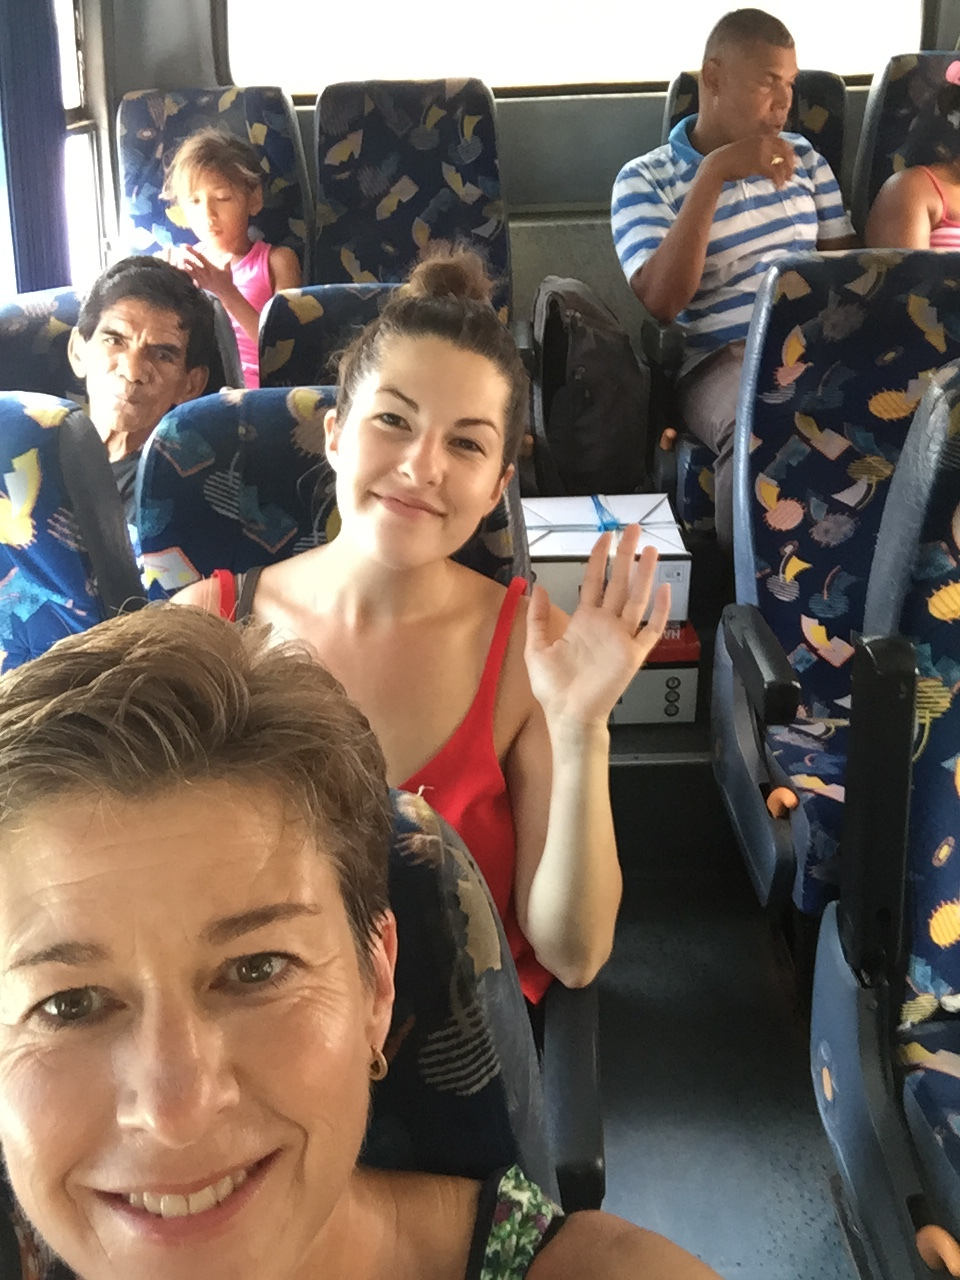 Here's Mom and I on the public bus from Santa Marta to Tayrona. Not pictured: A family and their pet chick, Pollito (yes, a baby bird on a bus).